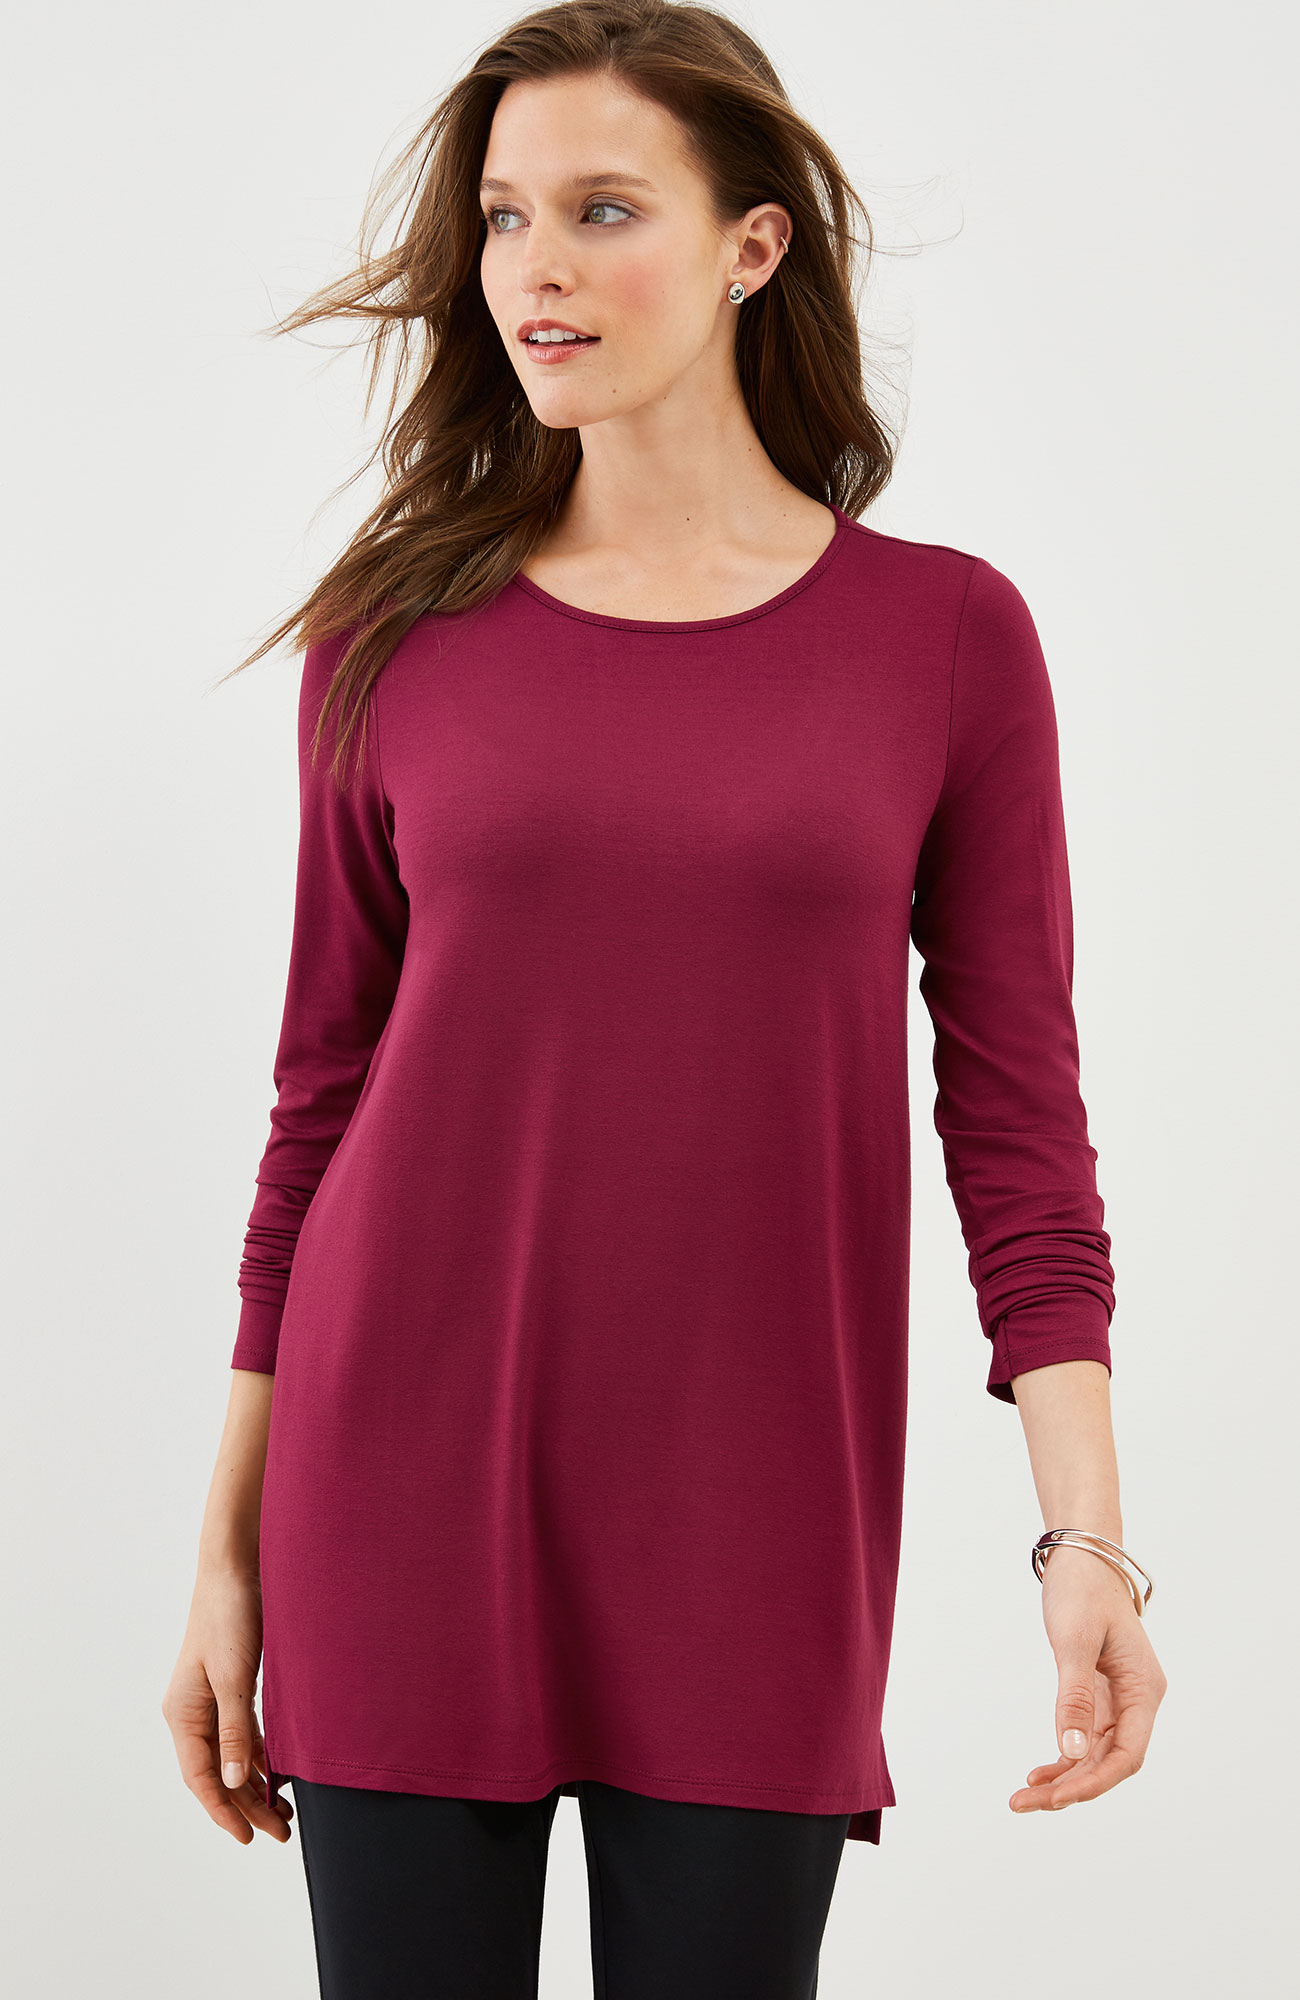 Wearever long-sleeve tunic